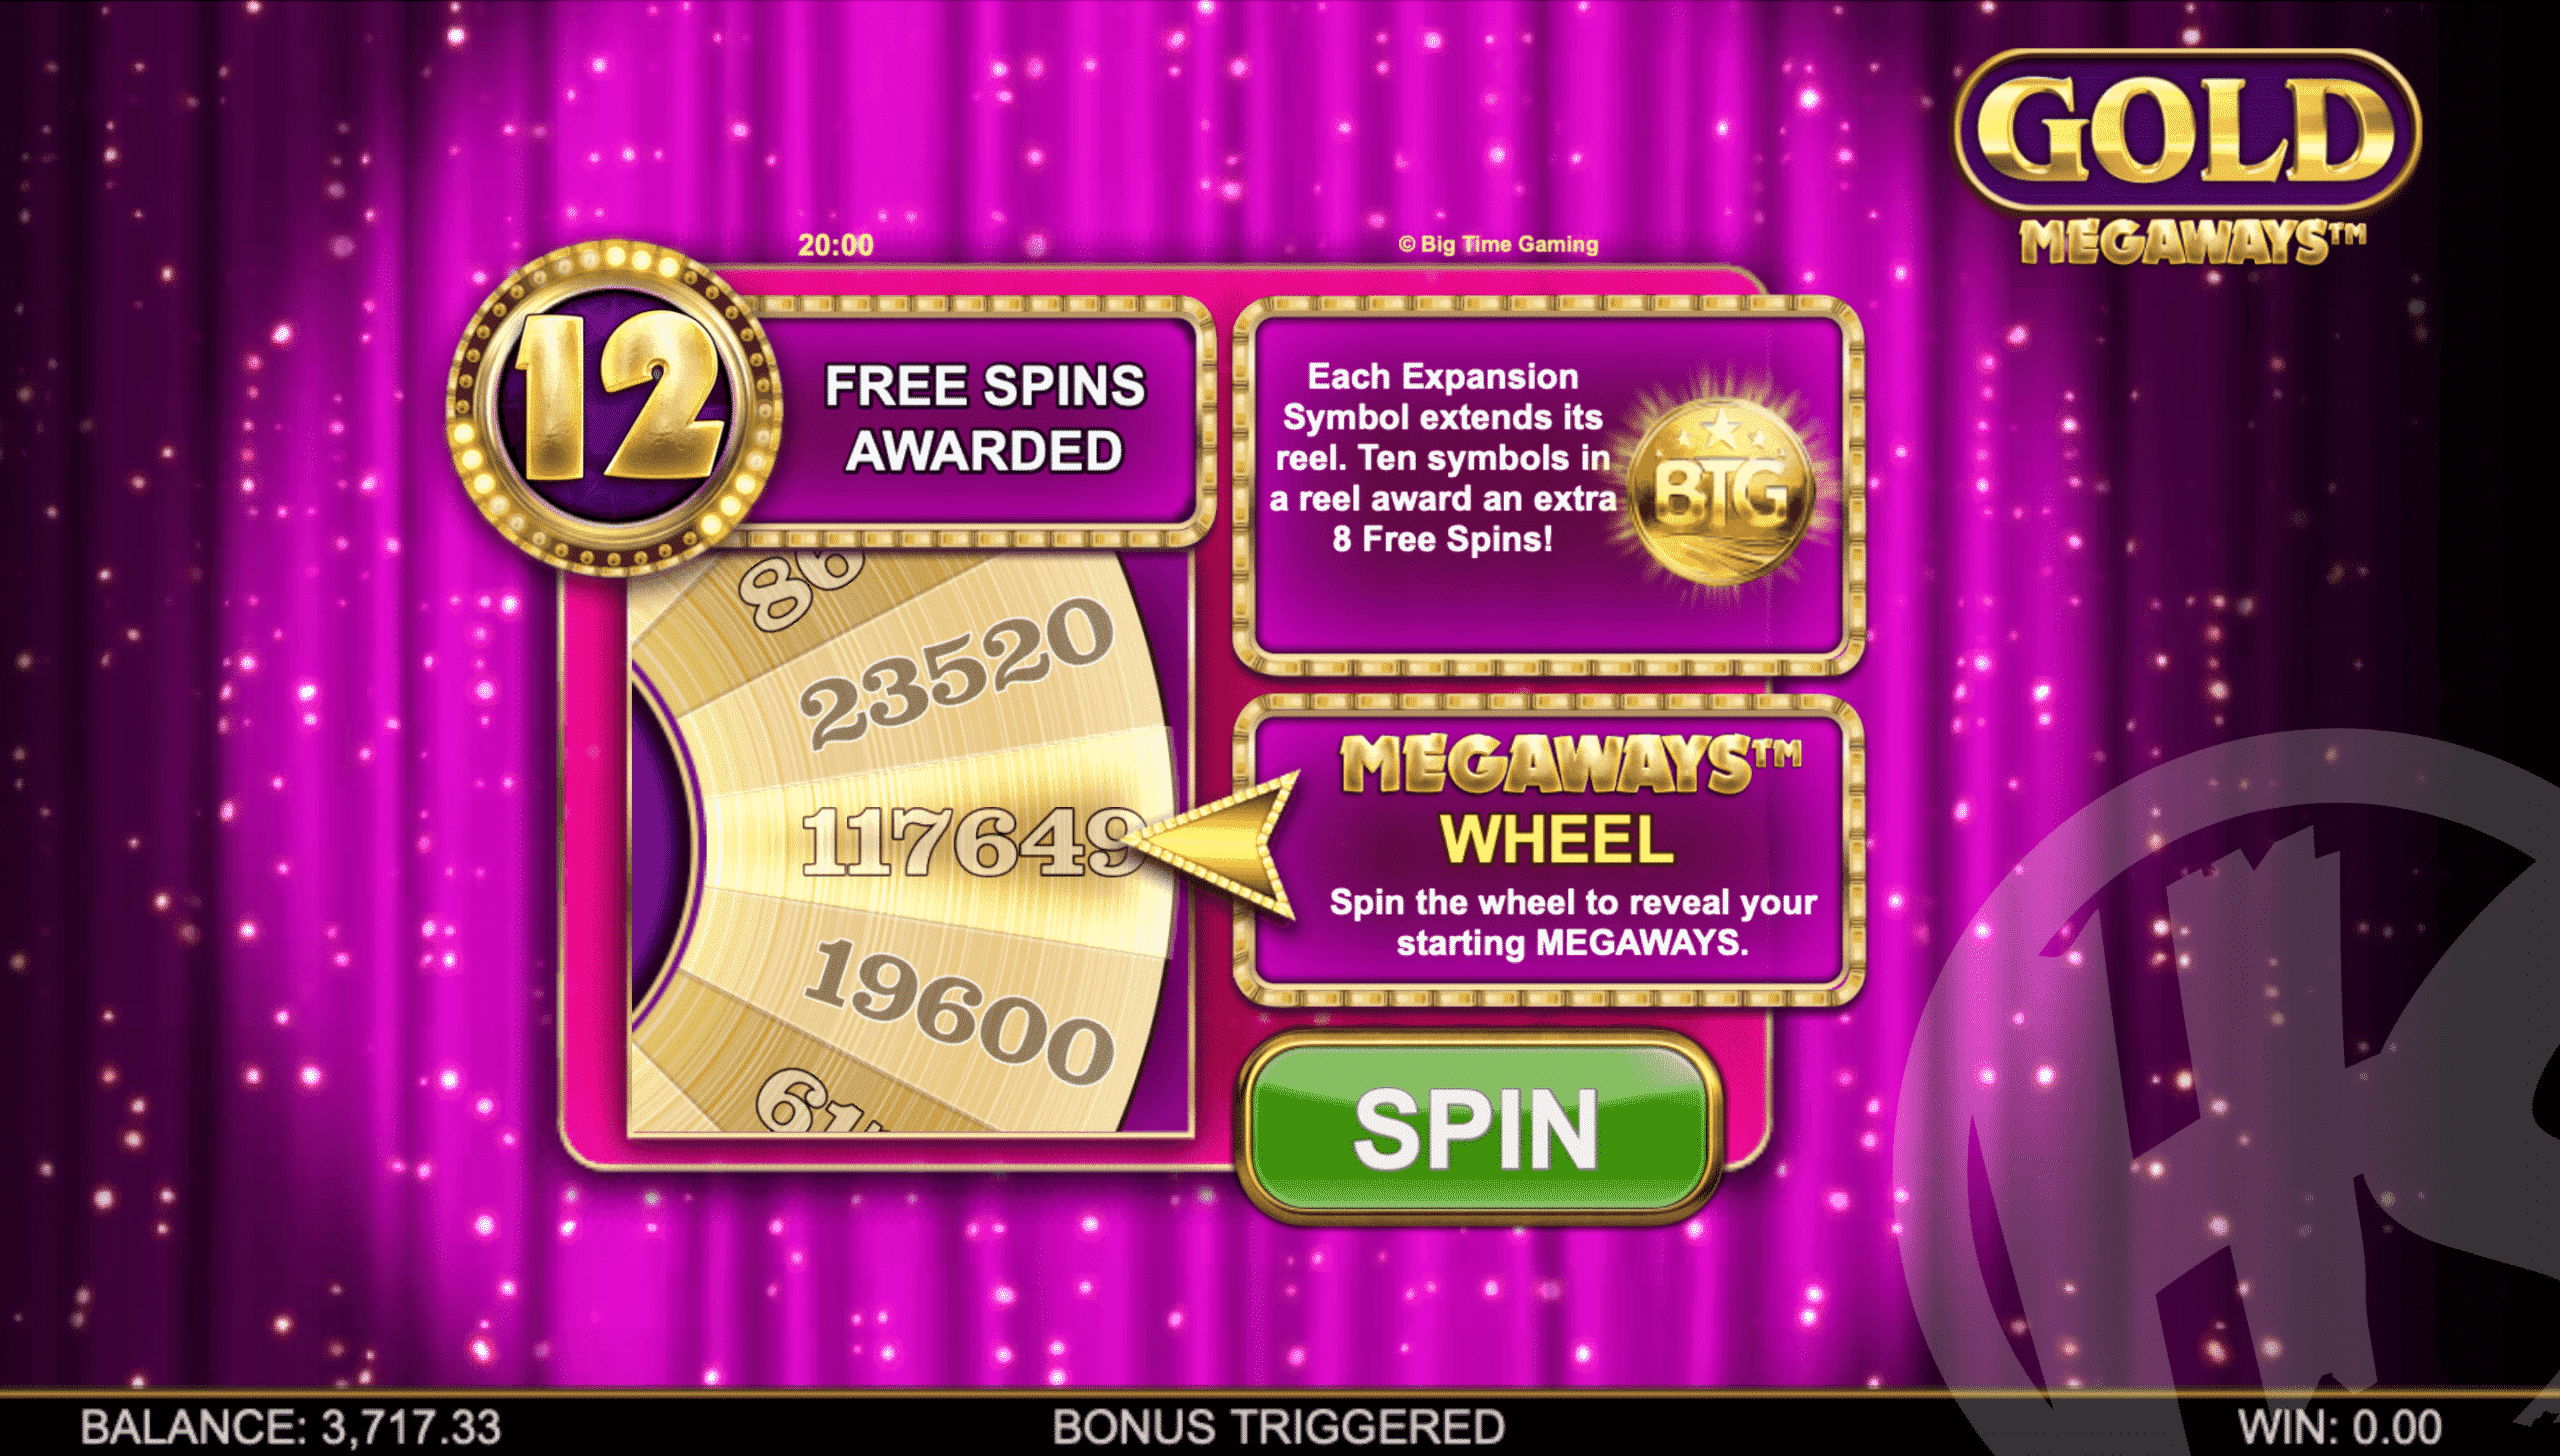 Spin The Wheel to Reveal Starting Megaways for Free Spins